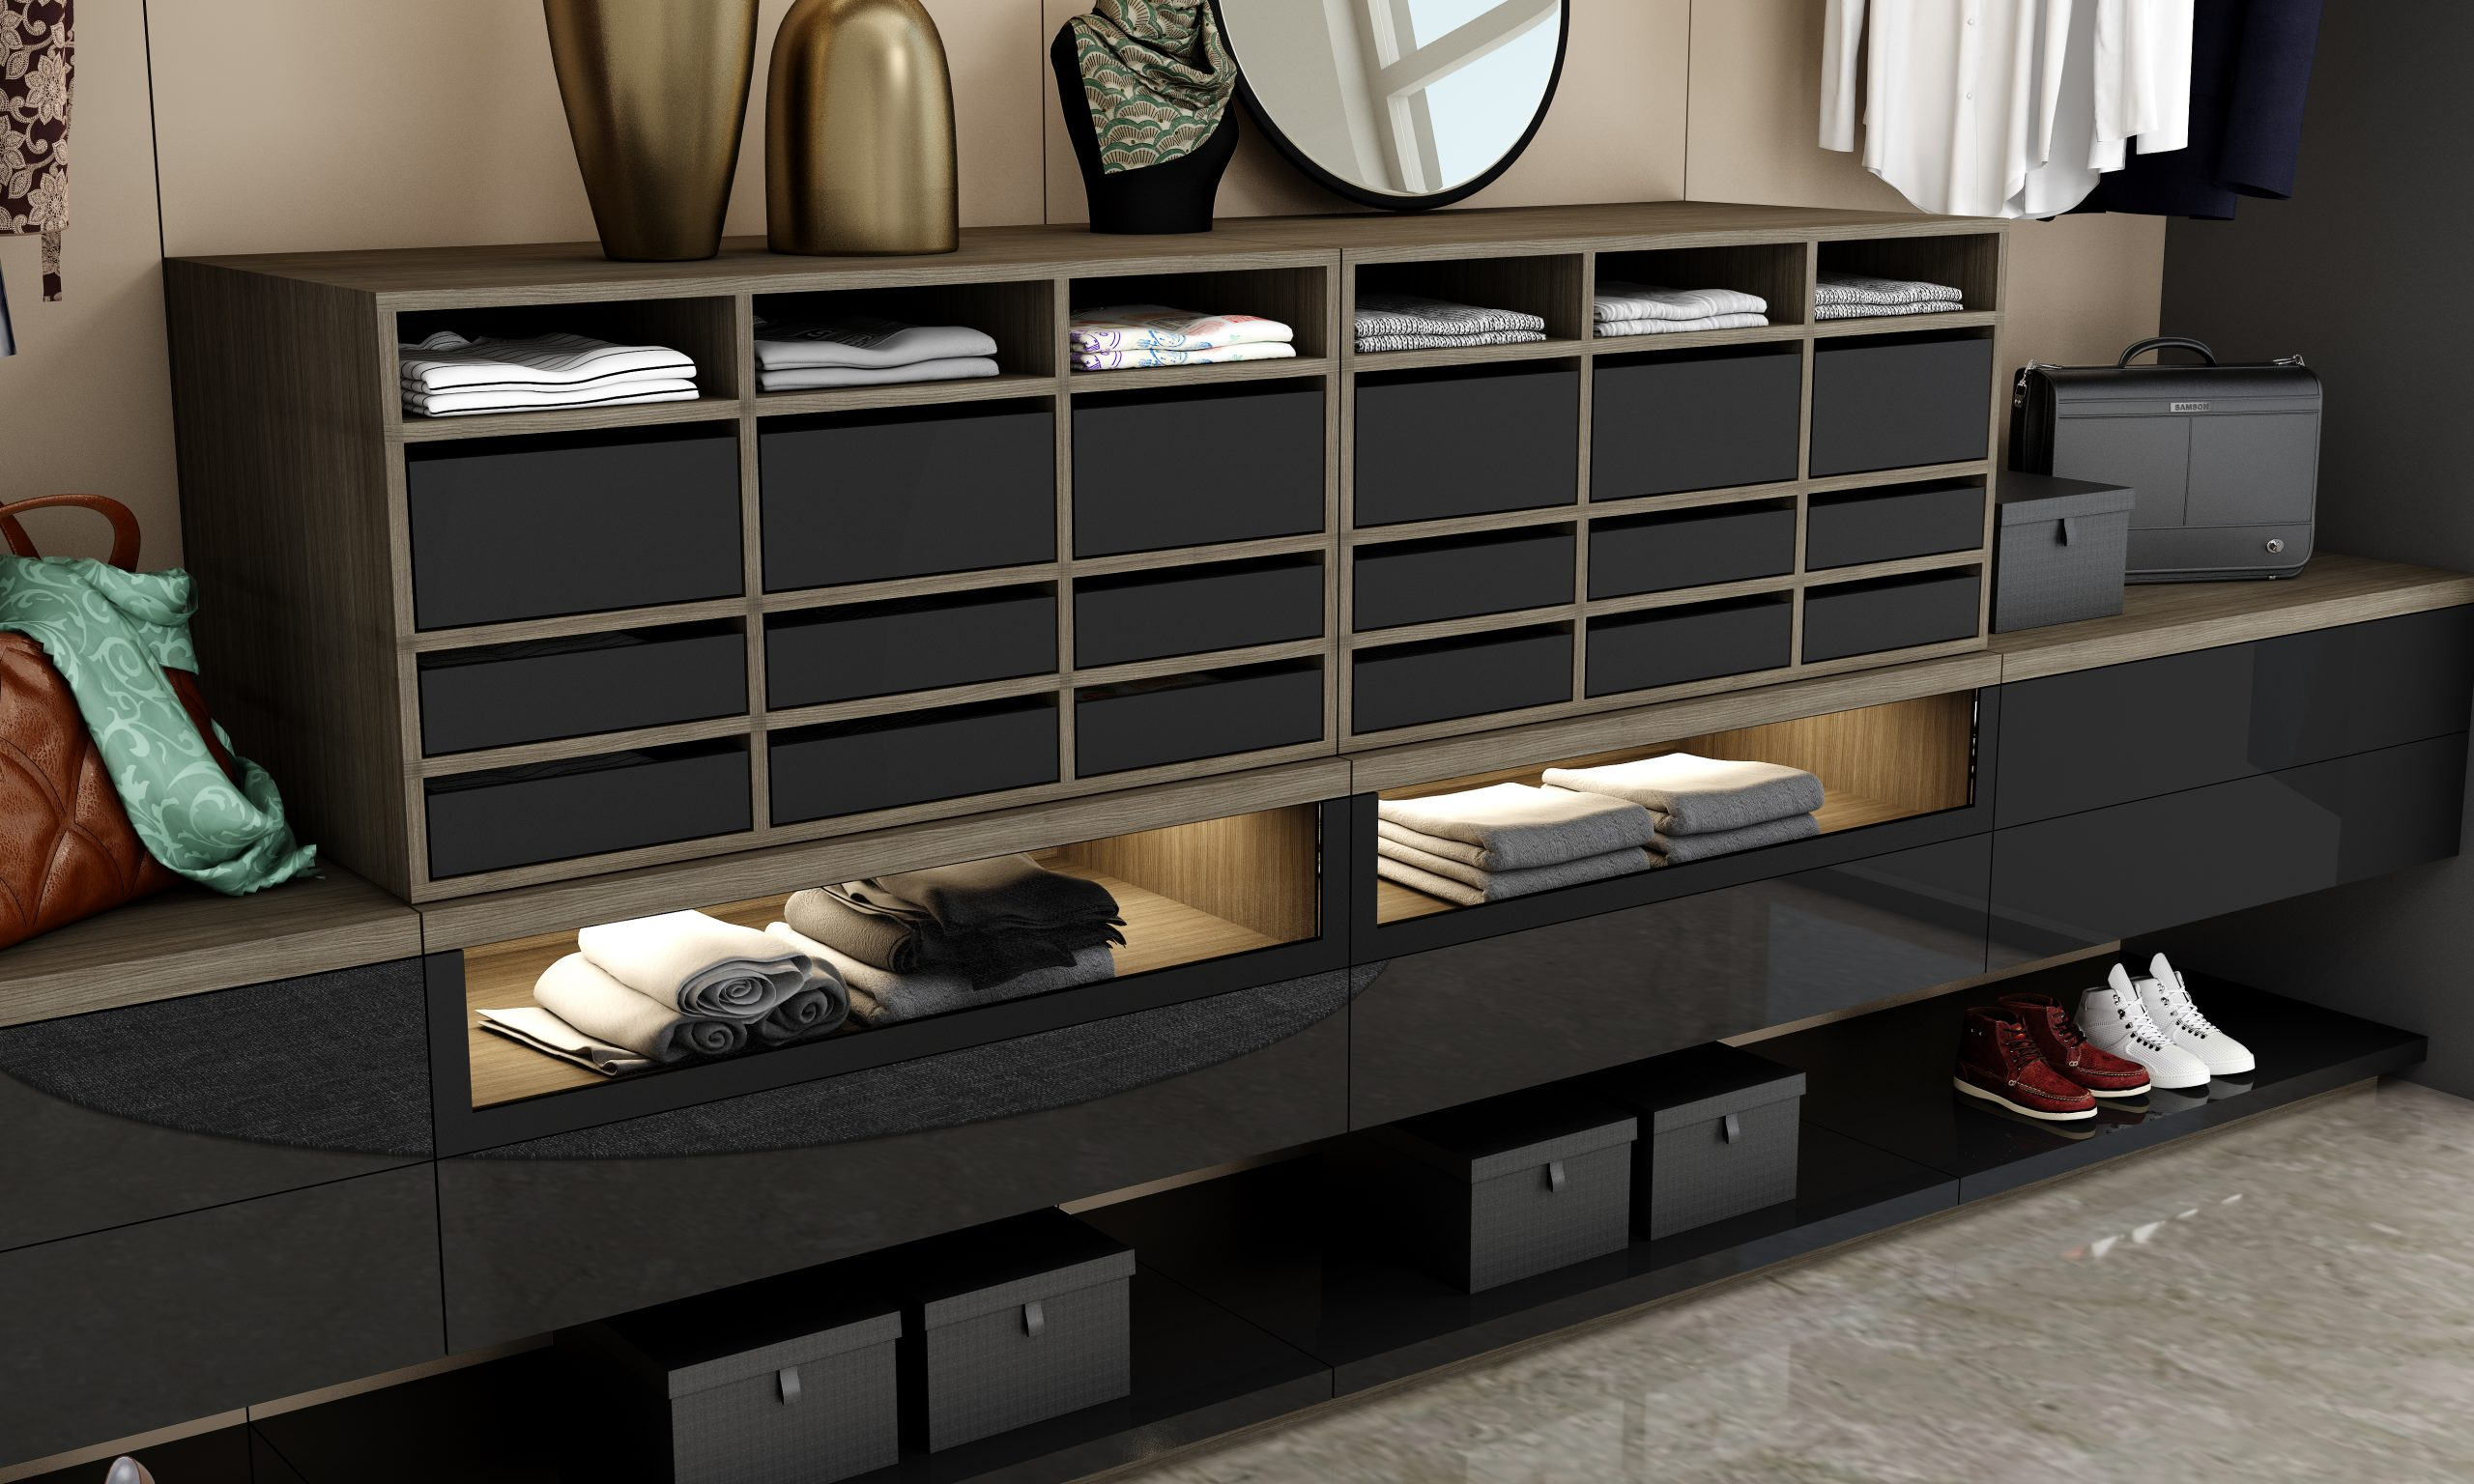 Small Walk-in Shelving Fitted Wardrobe With Hinged Wardrobe in Combination of Sable Wood and Dark Grey